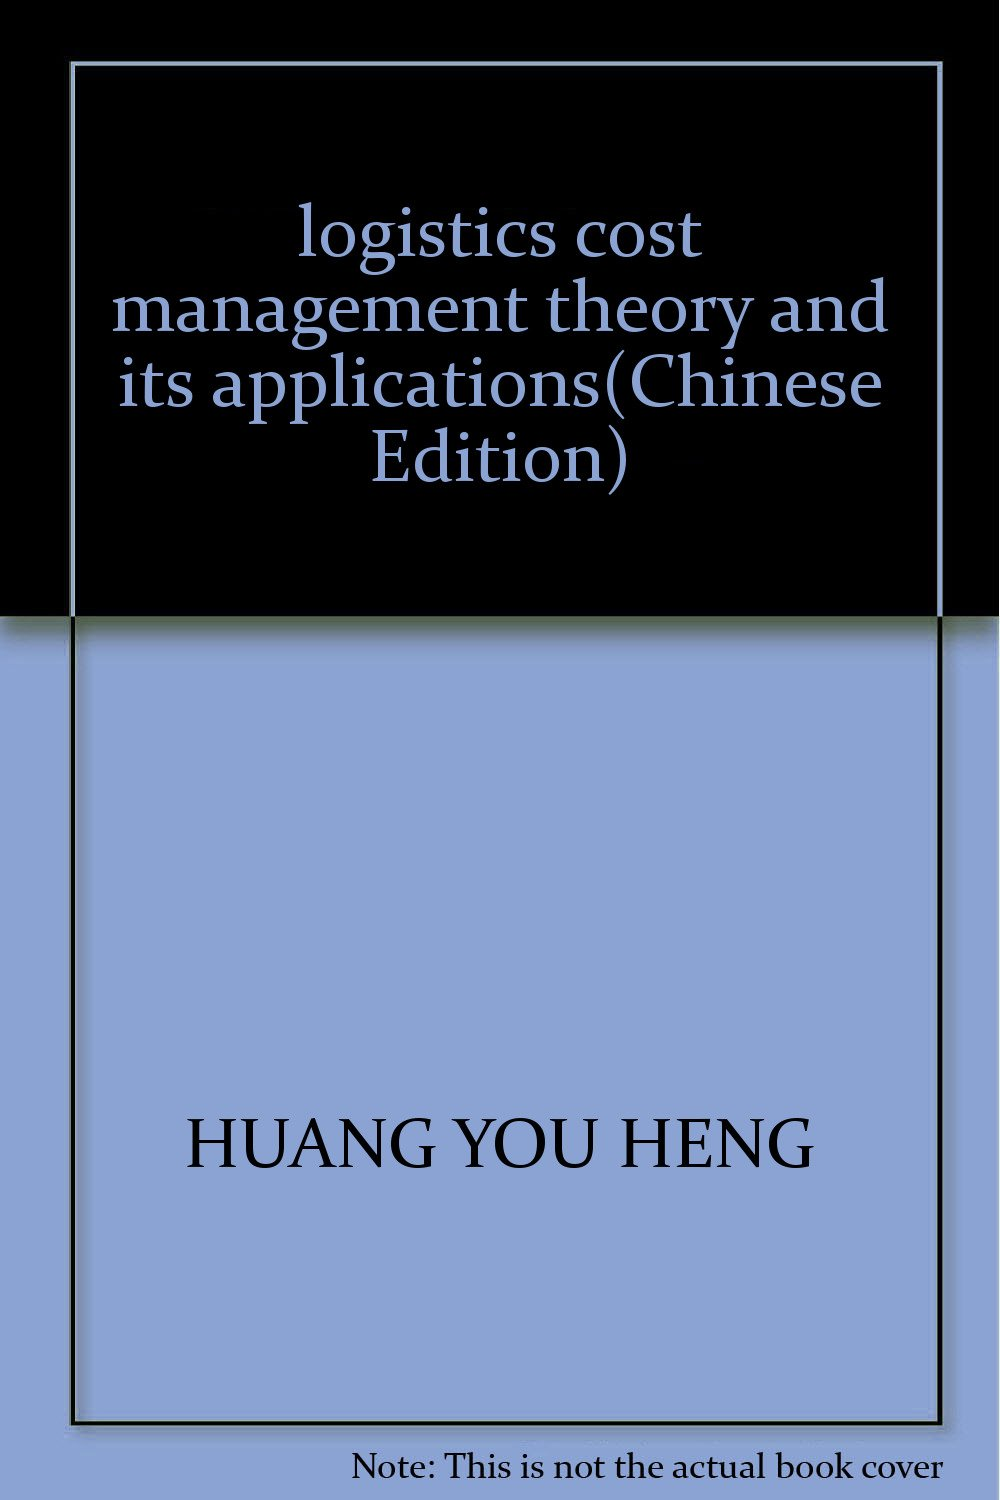 logistics cost management theory and its applications(Chinese Edition) pdf